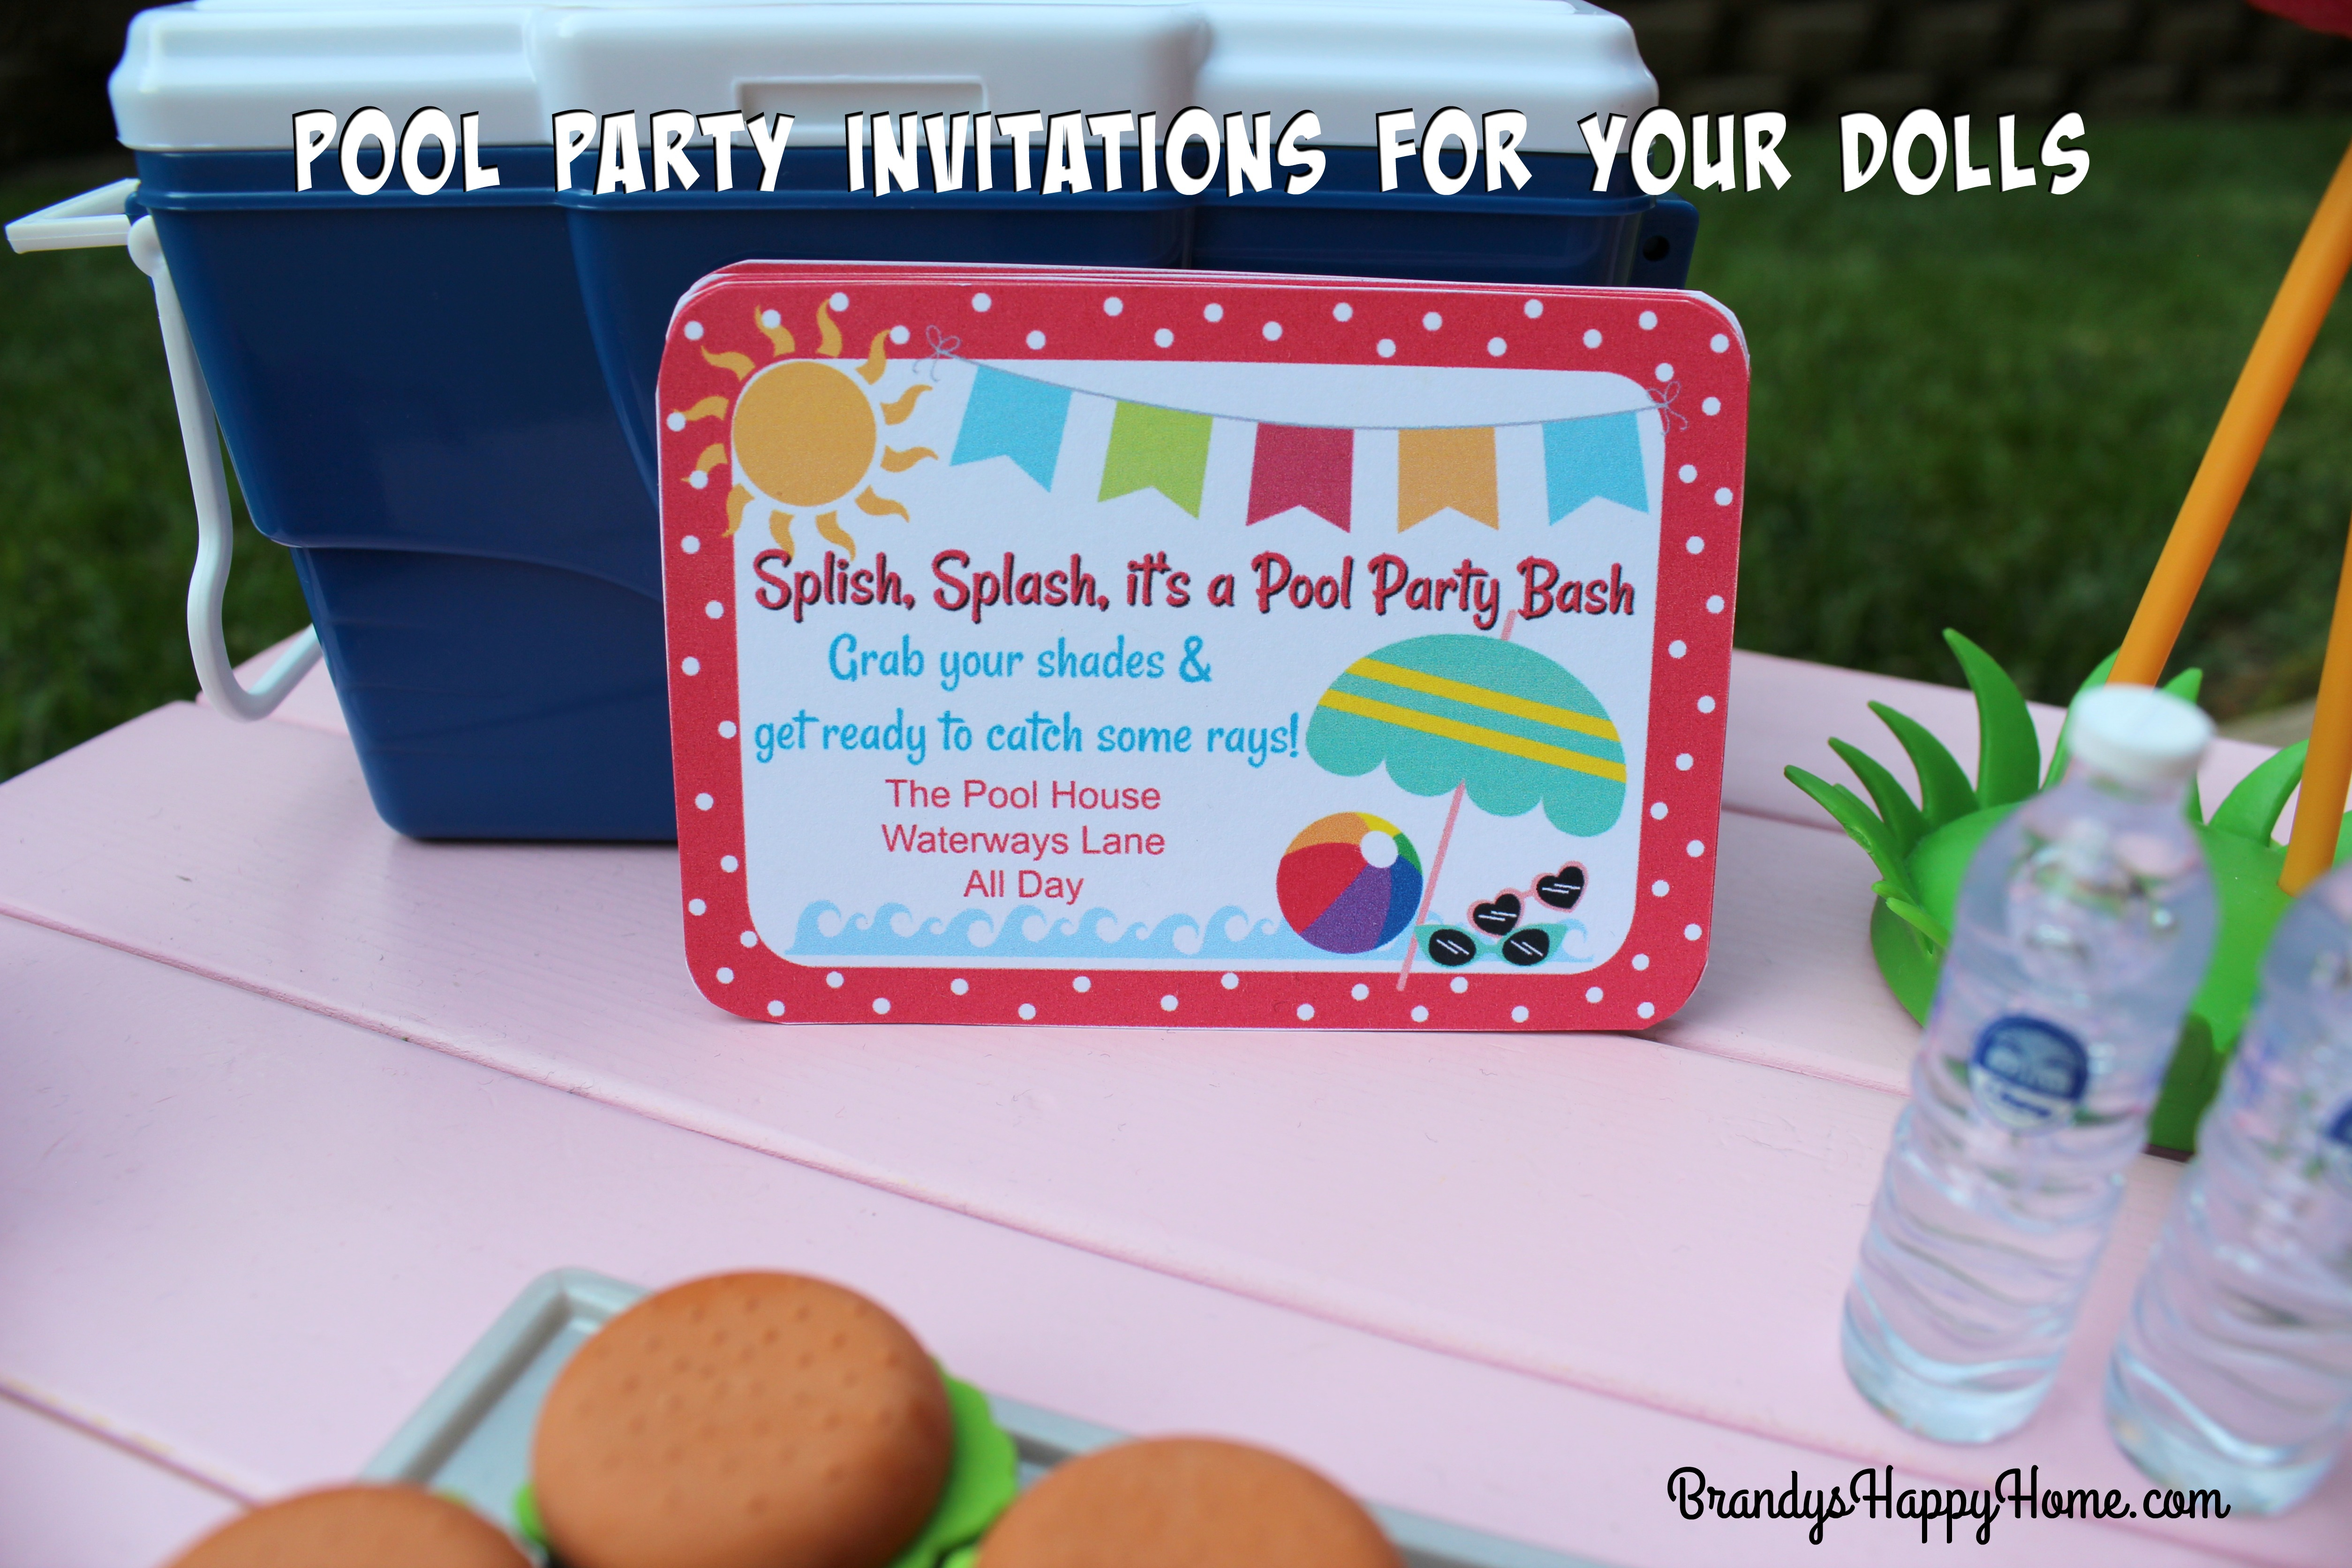 Pool Party Invitations For American Girl Dolls - American Girl Party Invitations Free Printable